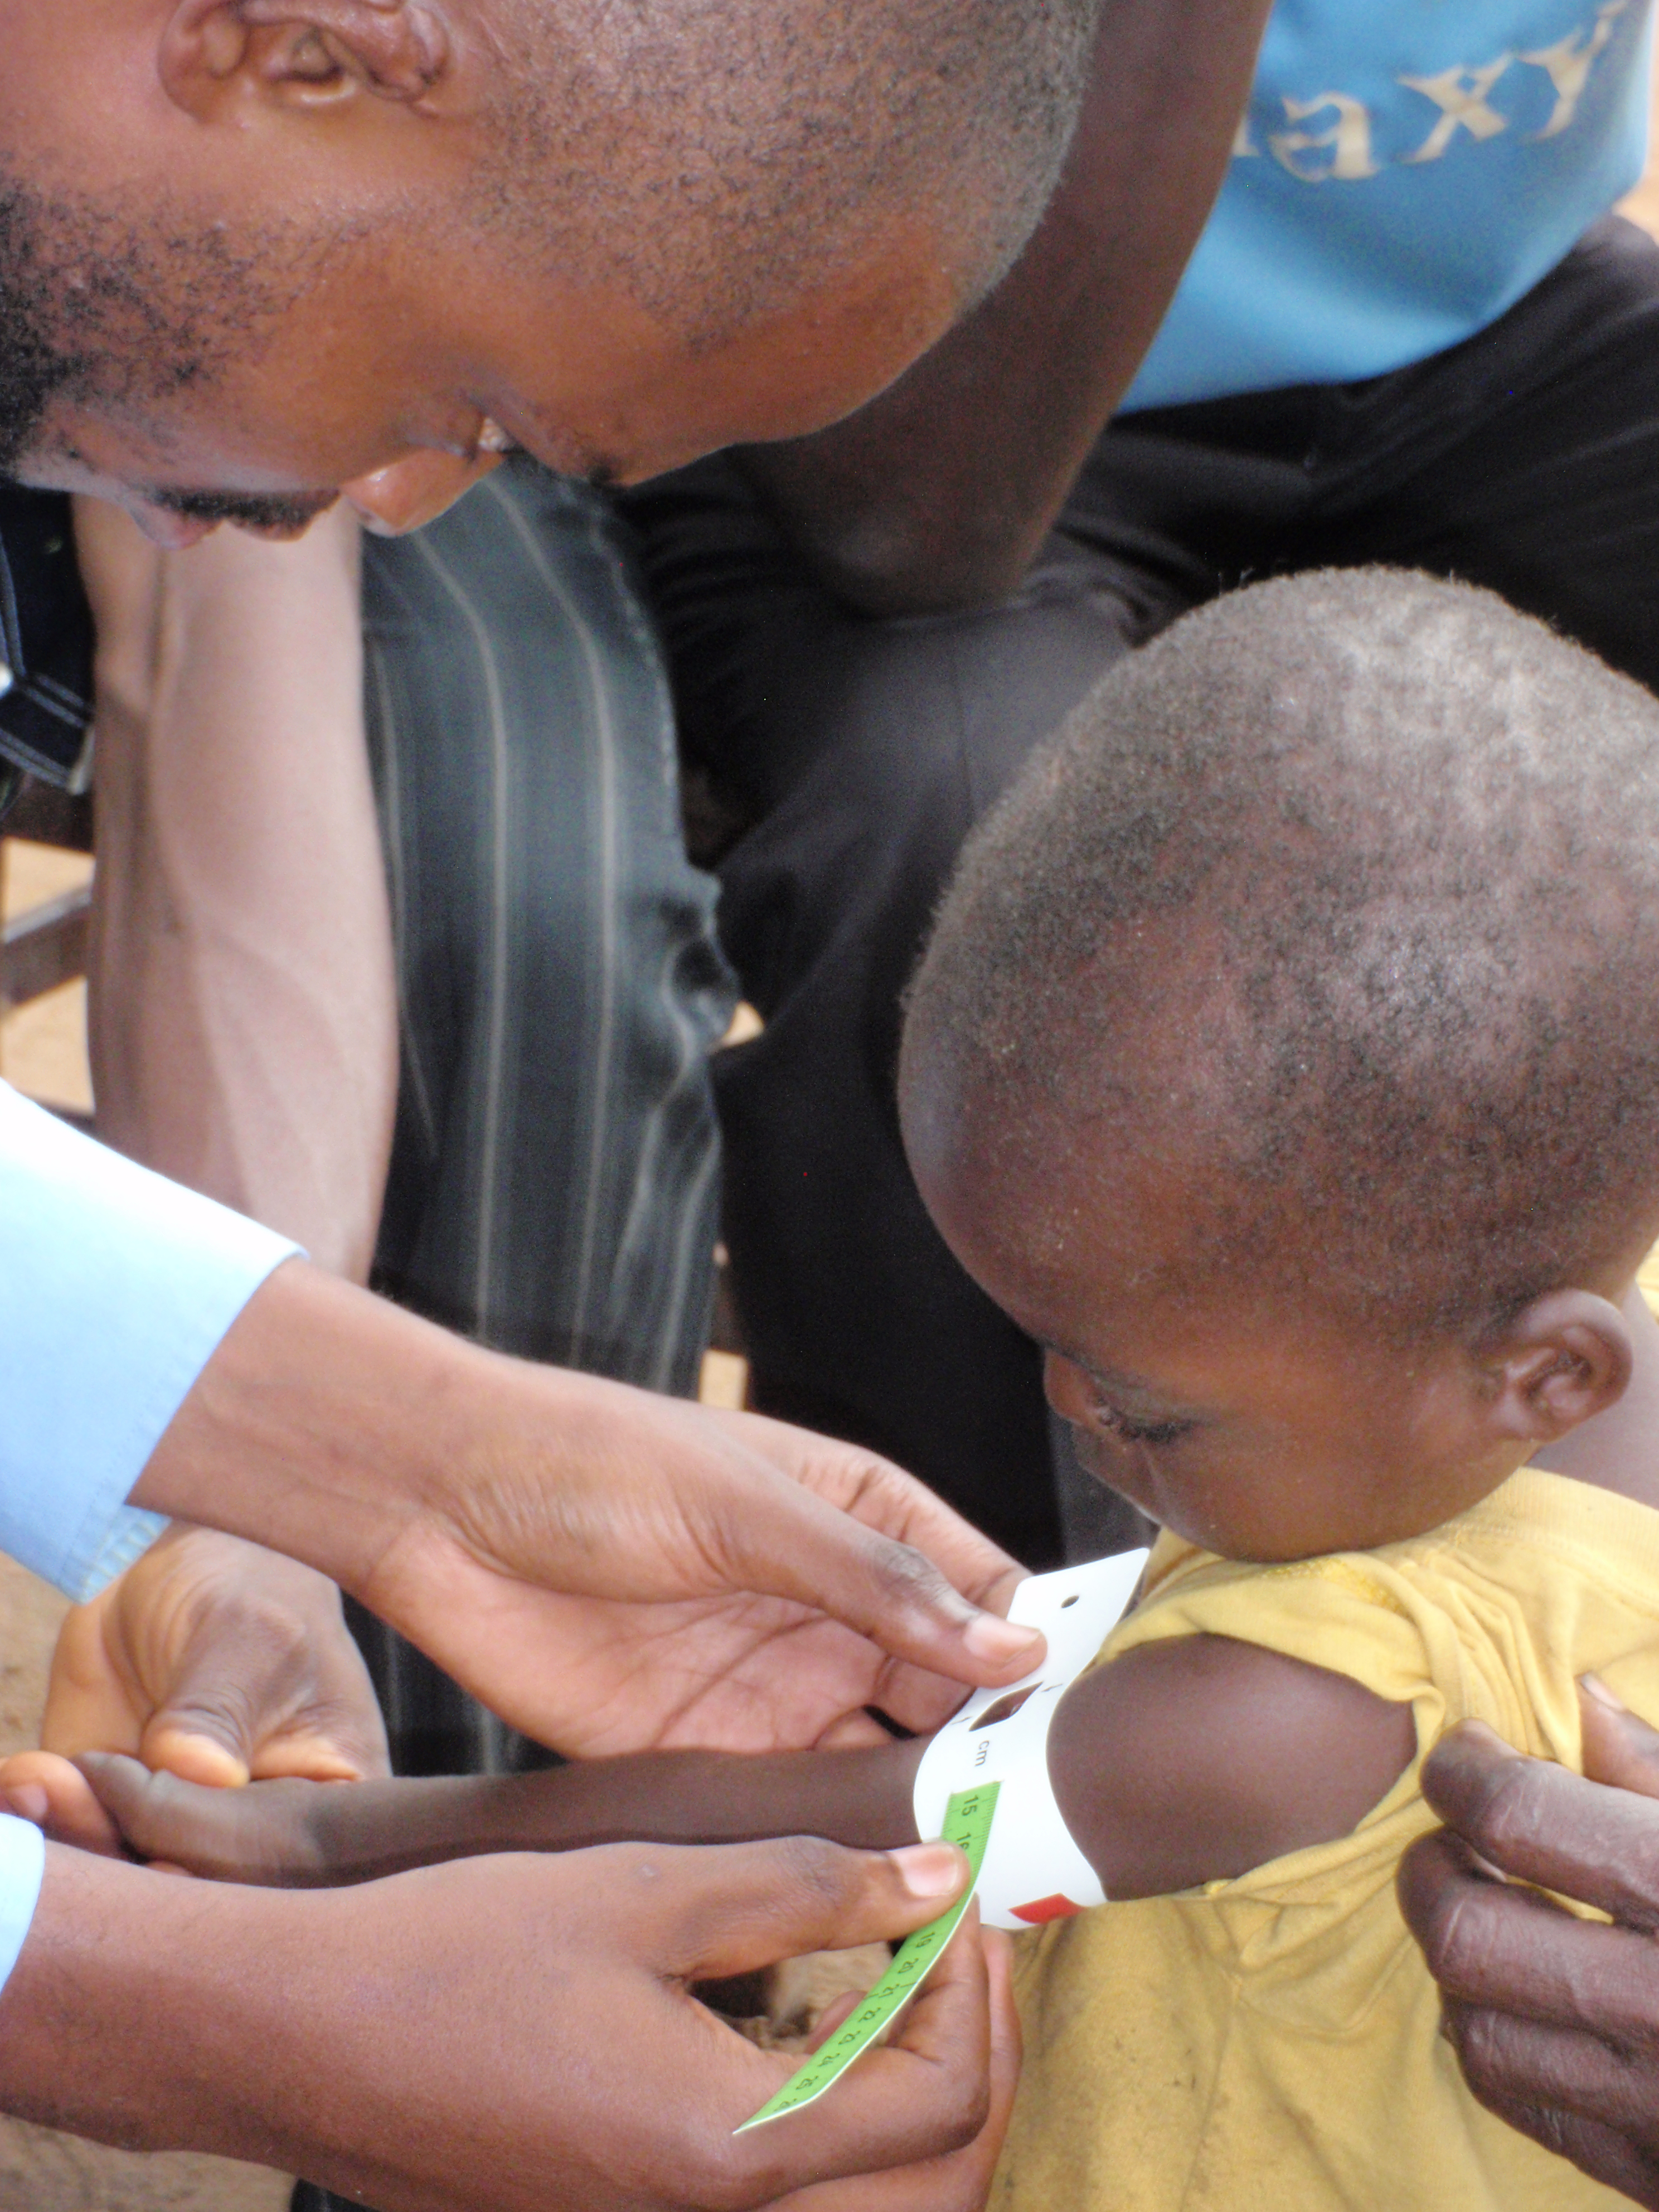 A simple measuring tool called a MUAC can be used by community health workers to measure a child's mid-upper arm circumference to quickly assess if a child is suffering from malnutrition.